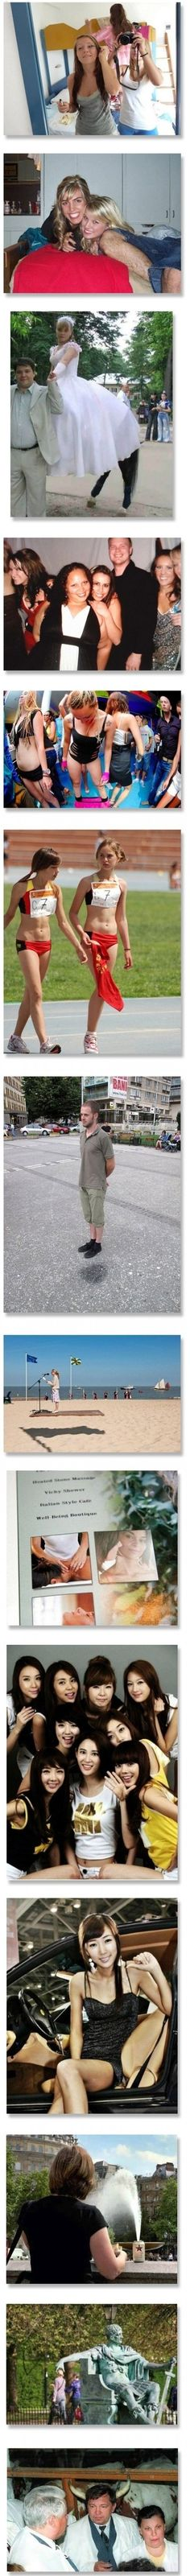 When photography becomes misleading.